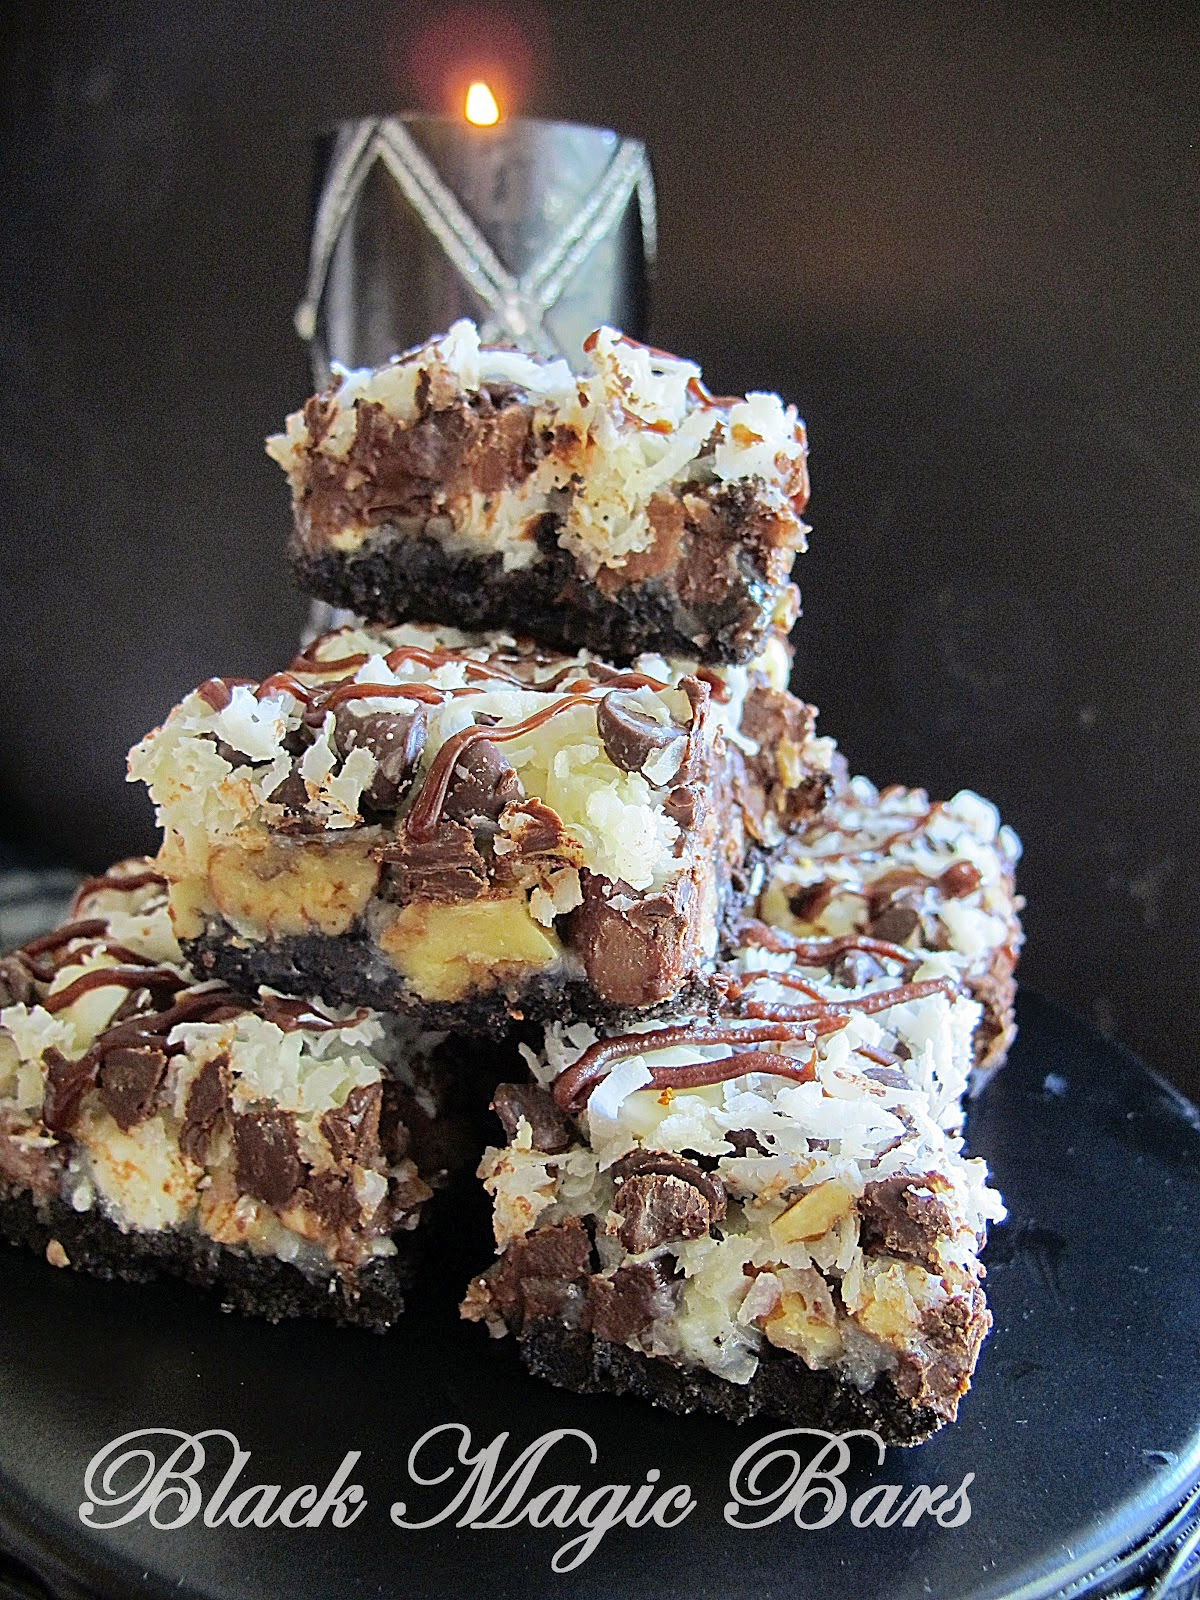 Black Magic Bars